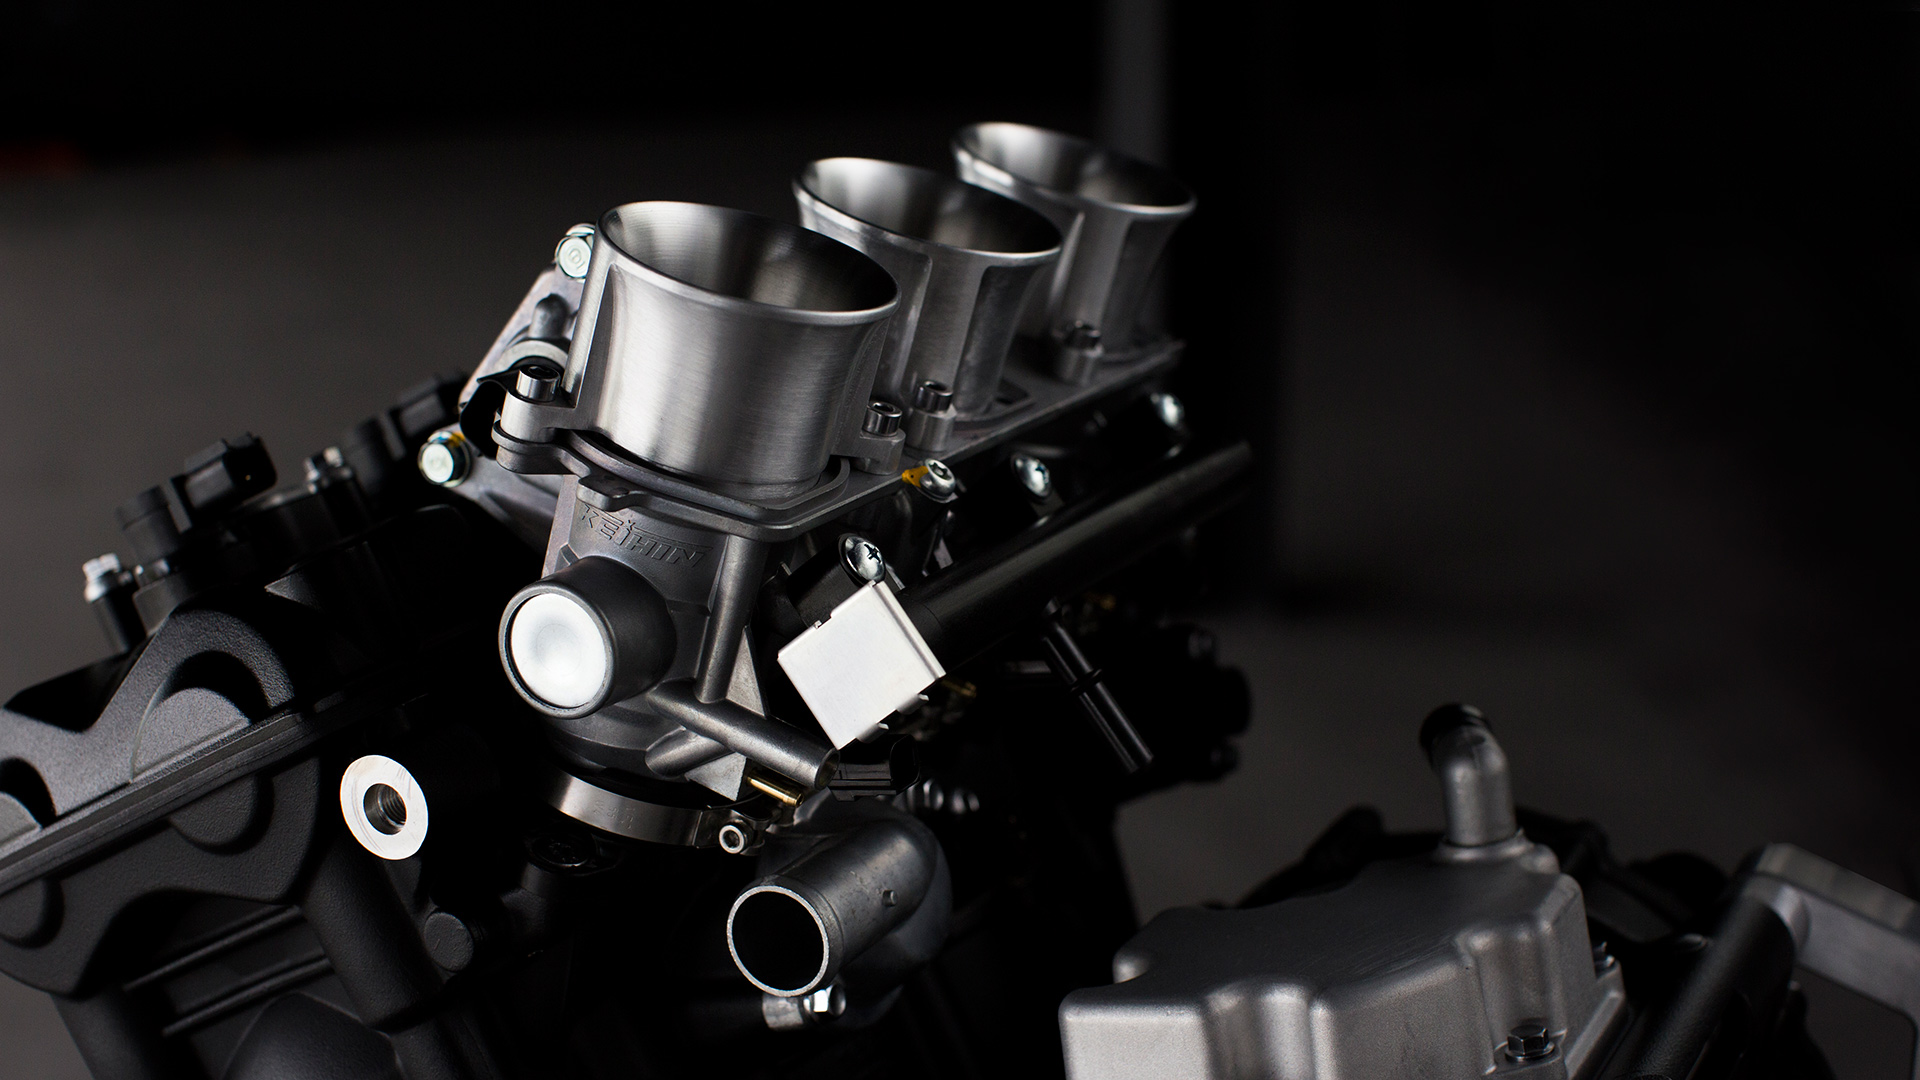 Close up of Triumph Moto2 motorcycle engine